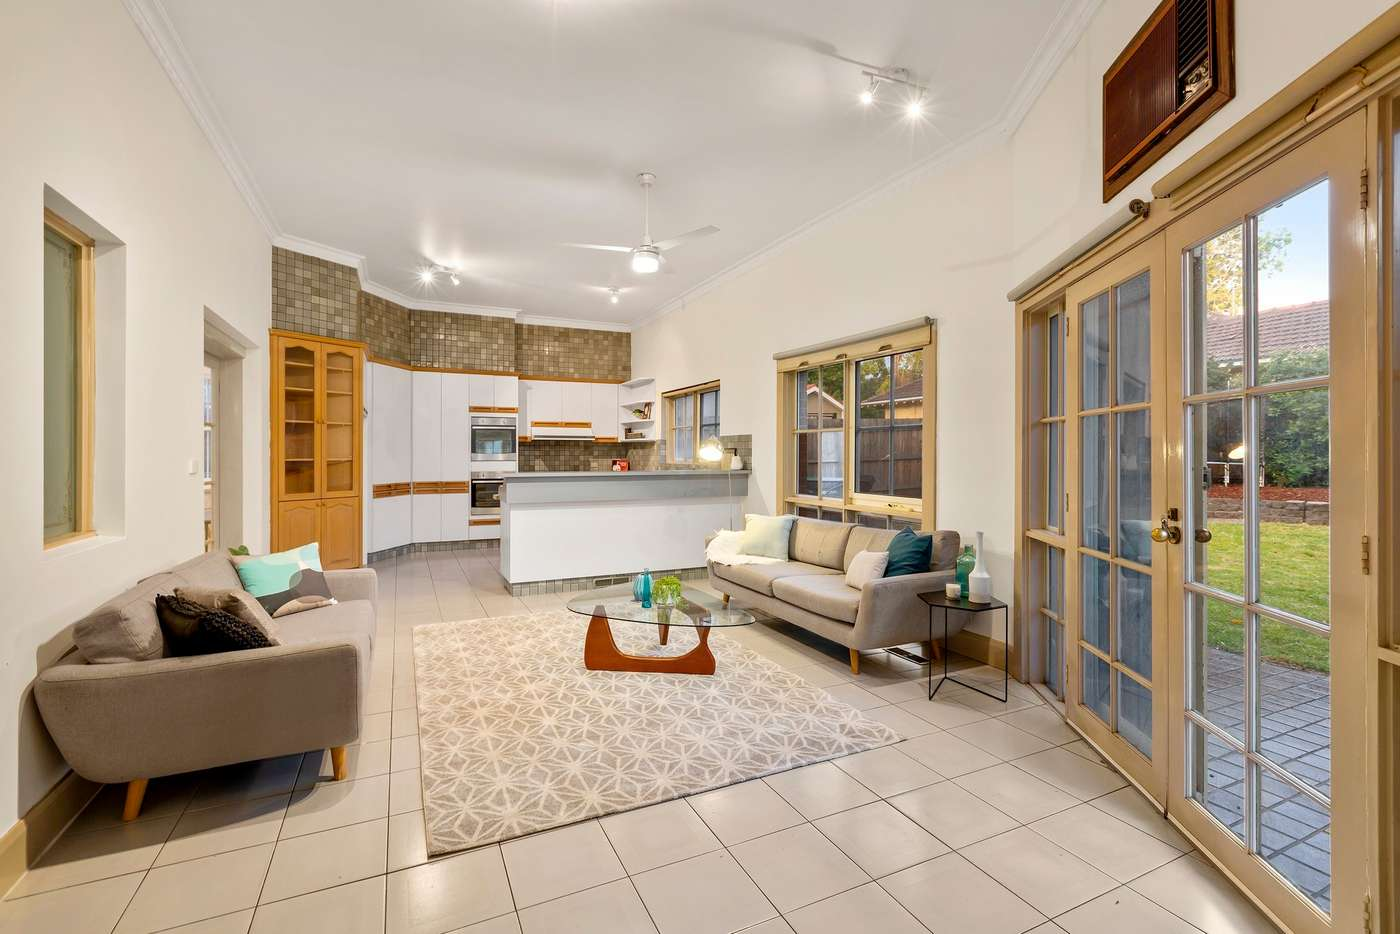 Seventh view of Homely house listing, 36 Hotham Street, St Kilda East VIC 3183